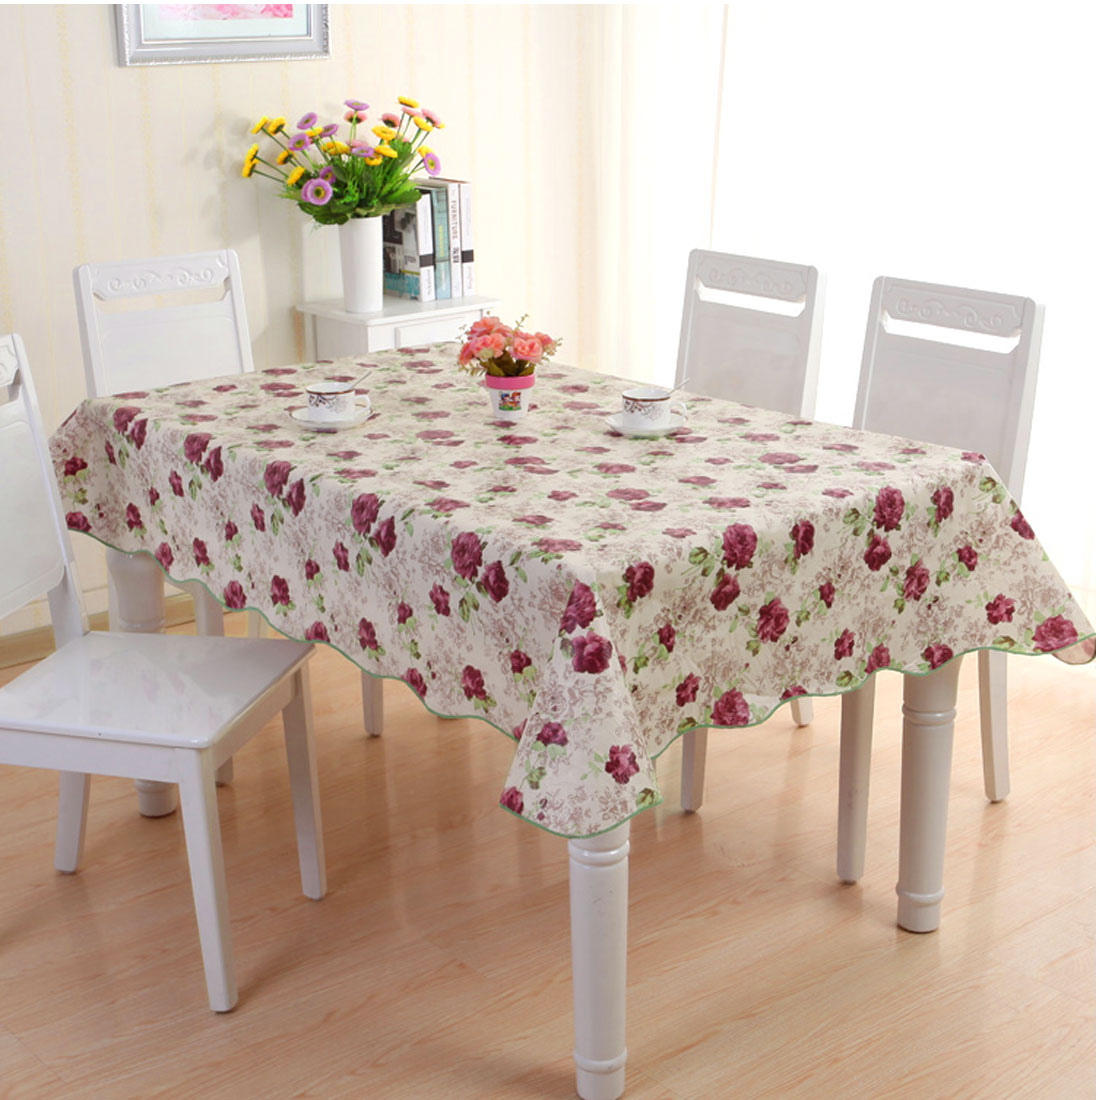 UXCELL Home Picnic Daisy Pattern Water Resistant Oil Proof Tablecloth Table  Cloth Cover 71 X 54 Inch